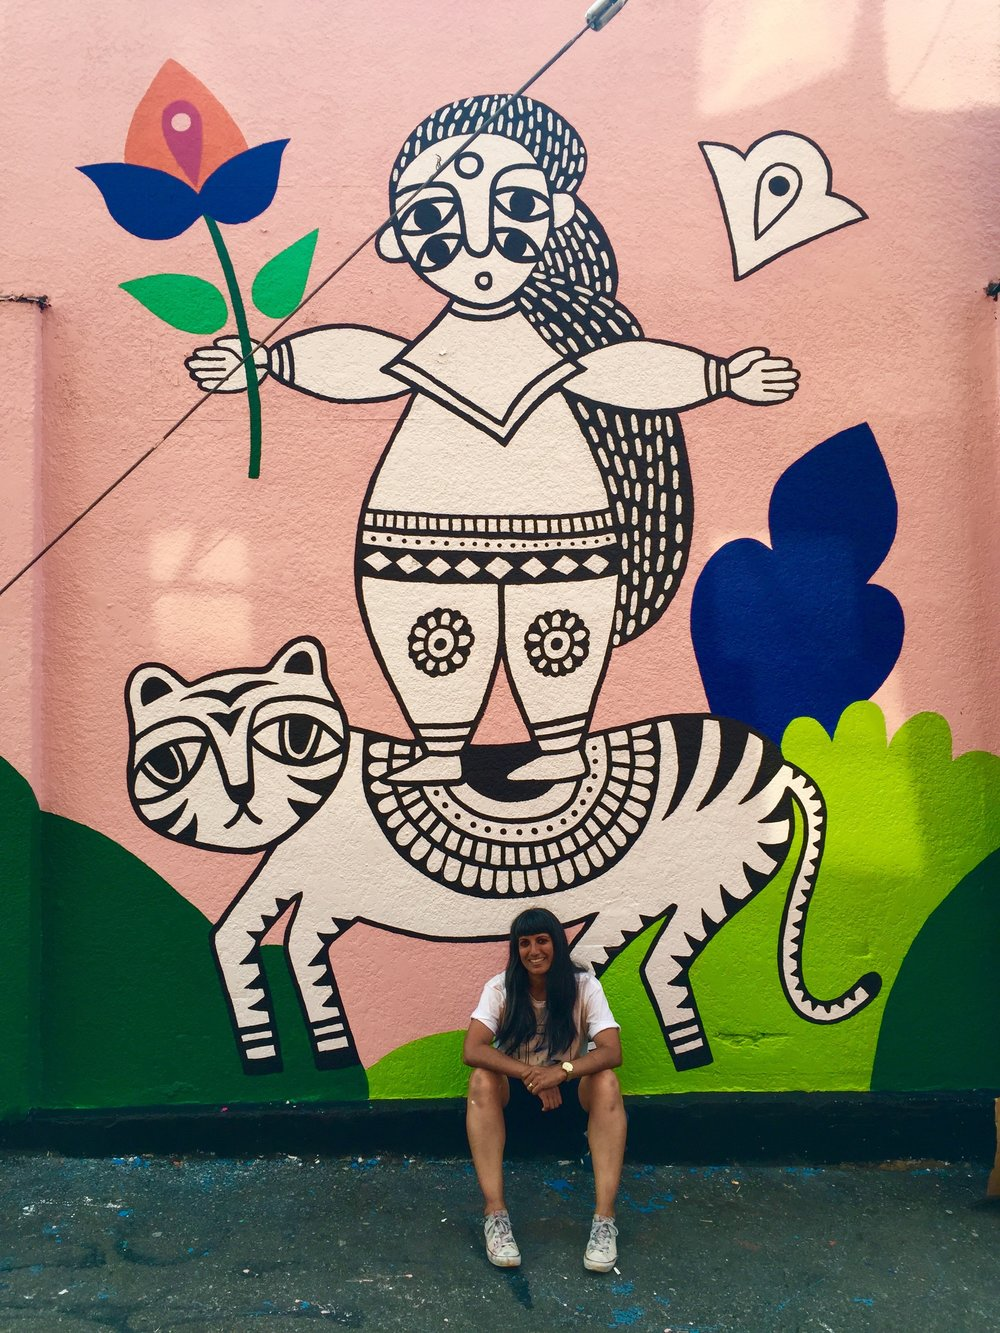 PHOTO CREDIT:  Megan Jenkins    Chats with Sandeep Johal @ Her mural: GIRLS ARE FIERCE LIKE TIGERS    I've lived in Mount Pleasant for over a decade. I currently live a few blocks away from my mural, which is located at a transit hub I use pretty consistently. To see it on an almost daily basis is pretty special.  It was important to me that the mural had a South Asian aesthetic to reflect my heritage. There are so few South Asian artists here (for many reasons, but the main one being artists aren't encouraged in my culture) and I wanted it to inspire other South Asians who are aspiring to work in the arts. The lady on the tiger originally came from a drawing I did at a residency at the Anvil Centre in New West last year.   Favourite things about painting the mural?    One of the best parts of painting this mural was meeting so many South Asians who came by to say hi and support me. I felt honoured to be painting a mural for VMF and scared, nervous about such a big wall, especially since it was my first outdoor mural. But, I did it, with the assistance from friends, and now all I want to do is paint murals all over the place — walls, ceilings, floors, stairs, wherever. I feel so much more confident. The press I got during the mural fest has also led to different opportunities and helped me propel my career forward, which I'm eternally thankful for.  The fact that VMF exists is a win. Supporting local talents, exposing the larger community to artists, giving everyone access to public art, and beautifying otherwise bland or under-utilized spaces is only some of what VMF is doing to make Vancity better. The fact that VMF is working towards 50% of the artists being female, supporting Indigenous artists, and first time muralists is pretty awesome. Oh, and the artists get paid! :)